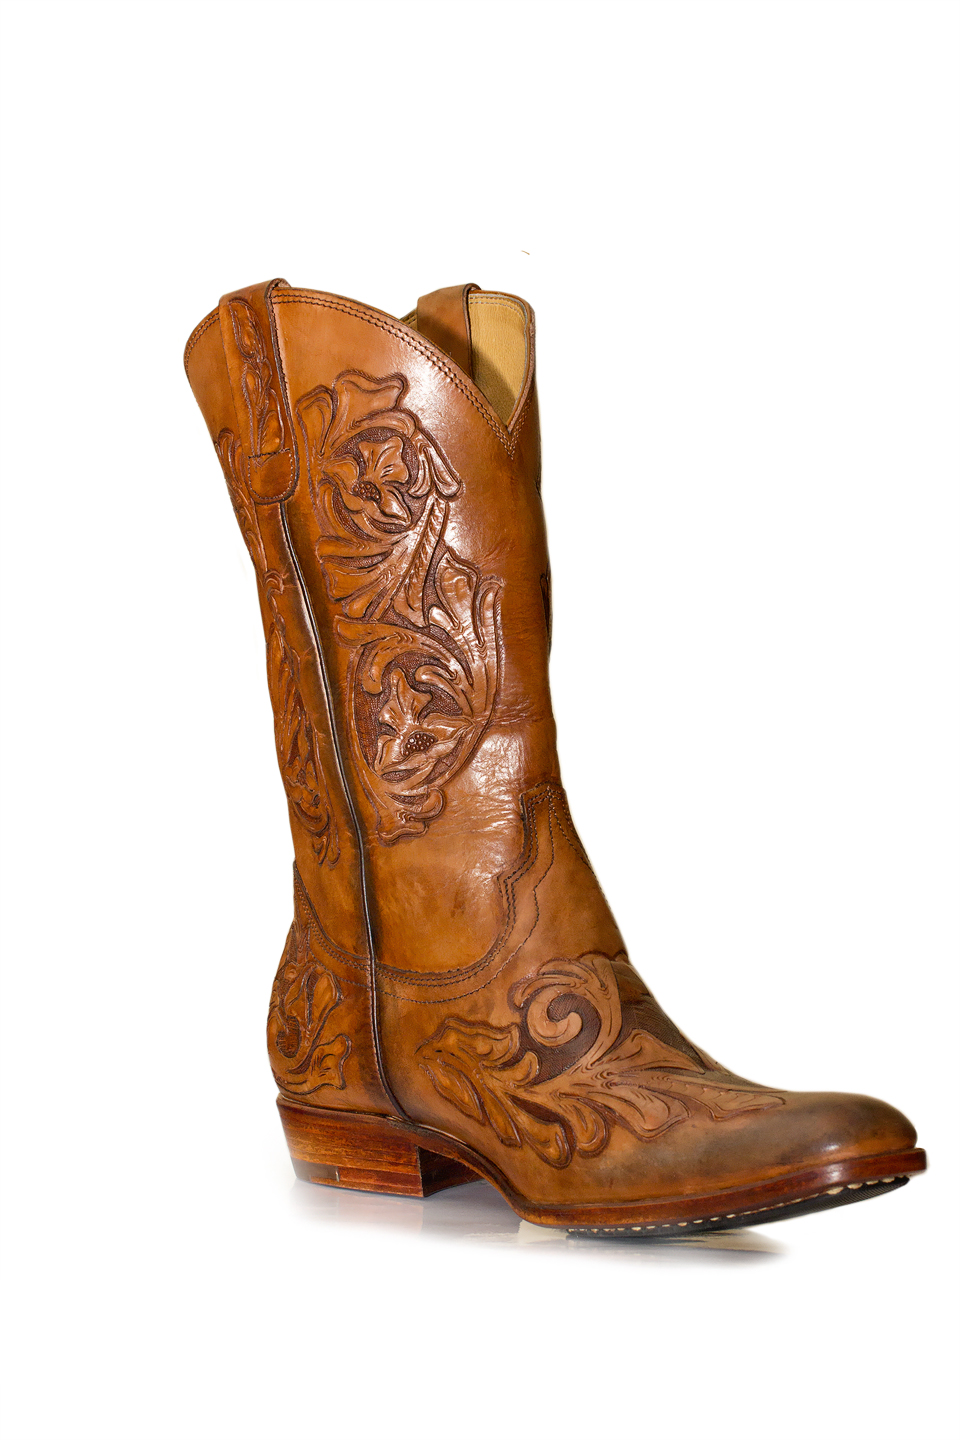 luxury cowboy boots elevator shoes